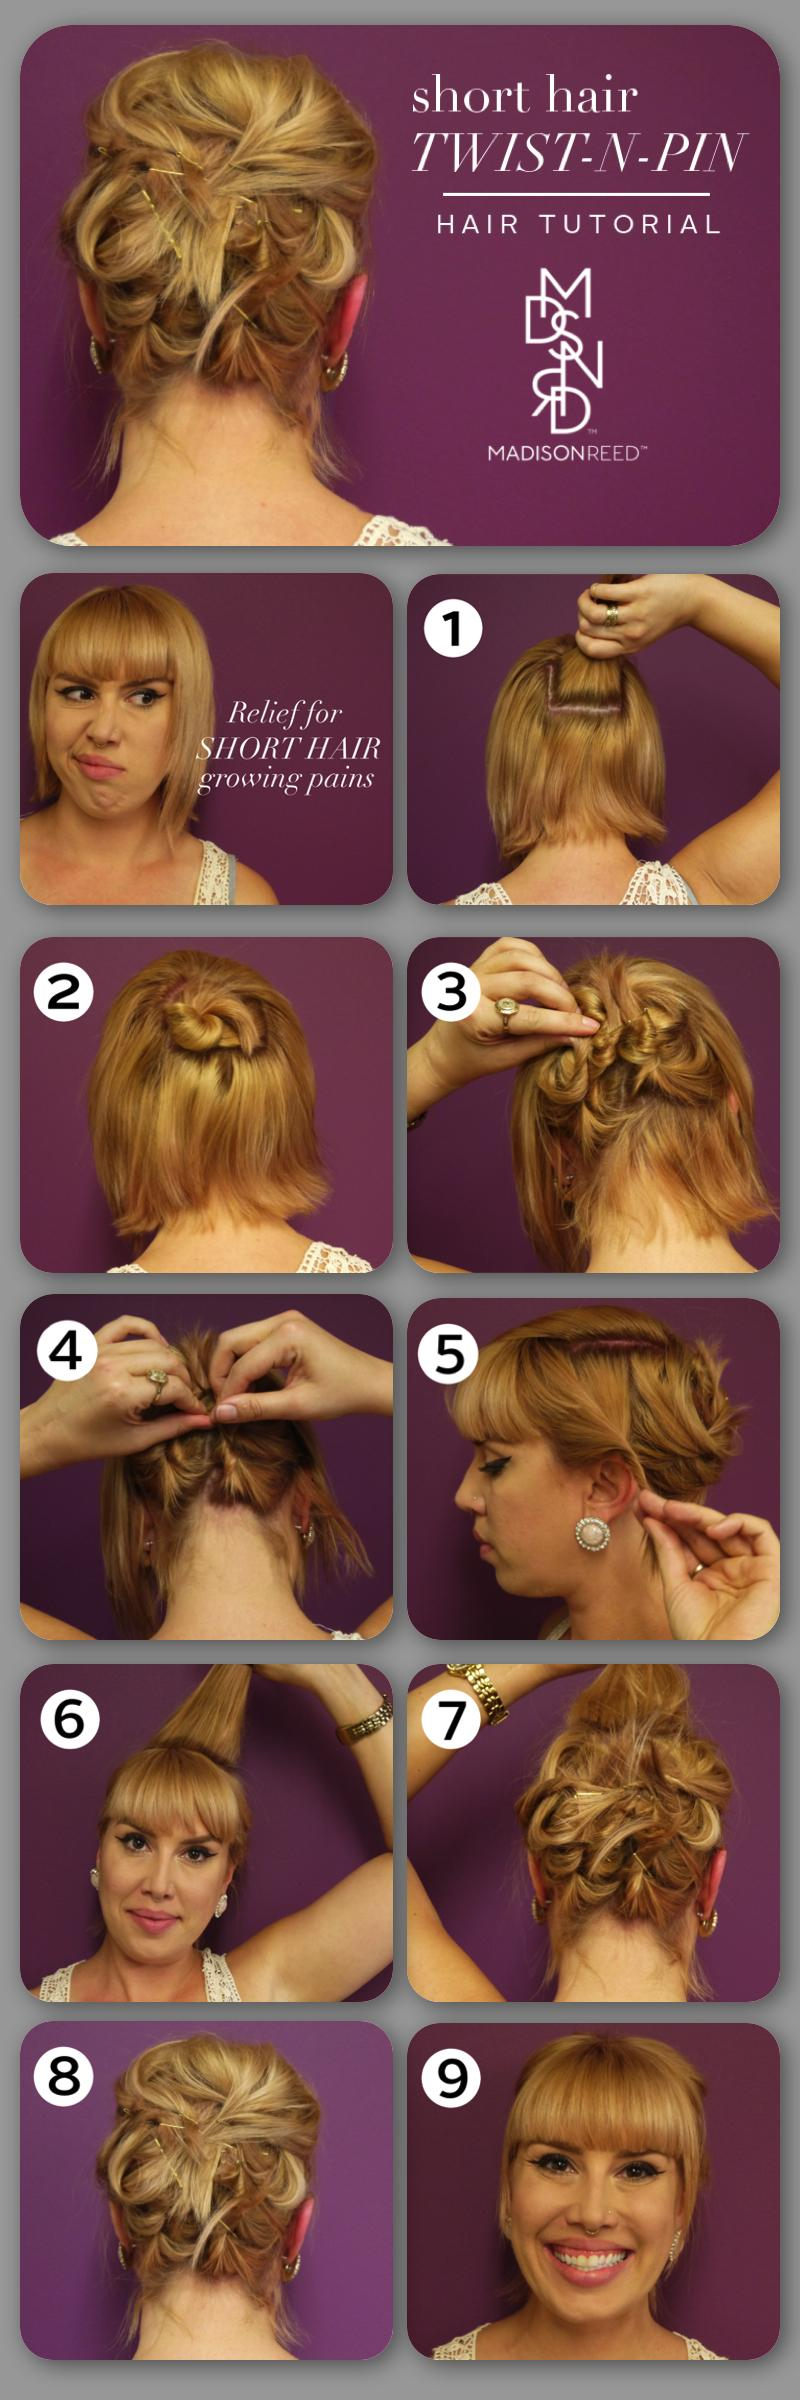 Hair Tutorial: Twist-N-Pin Hairstyle for Short Hair